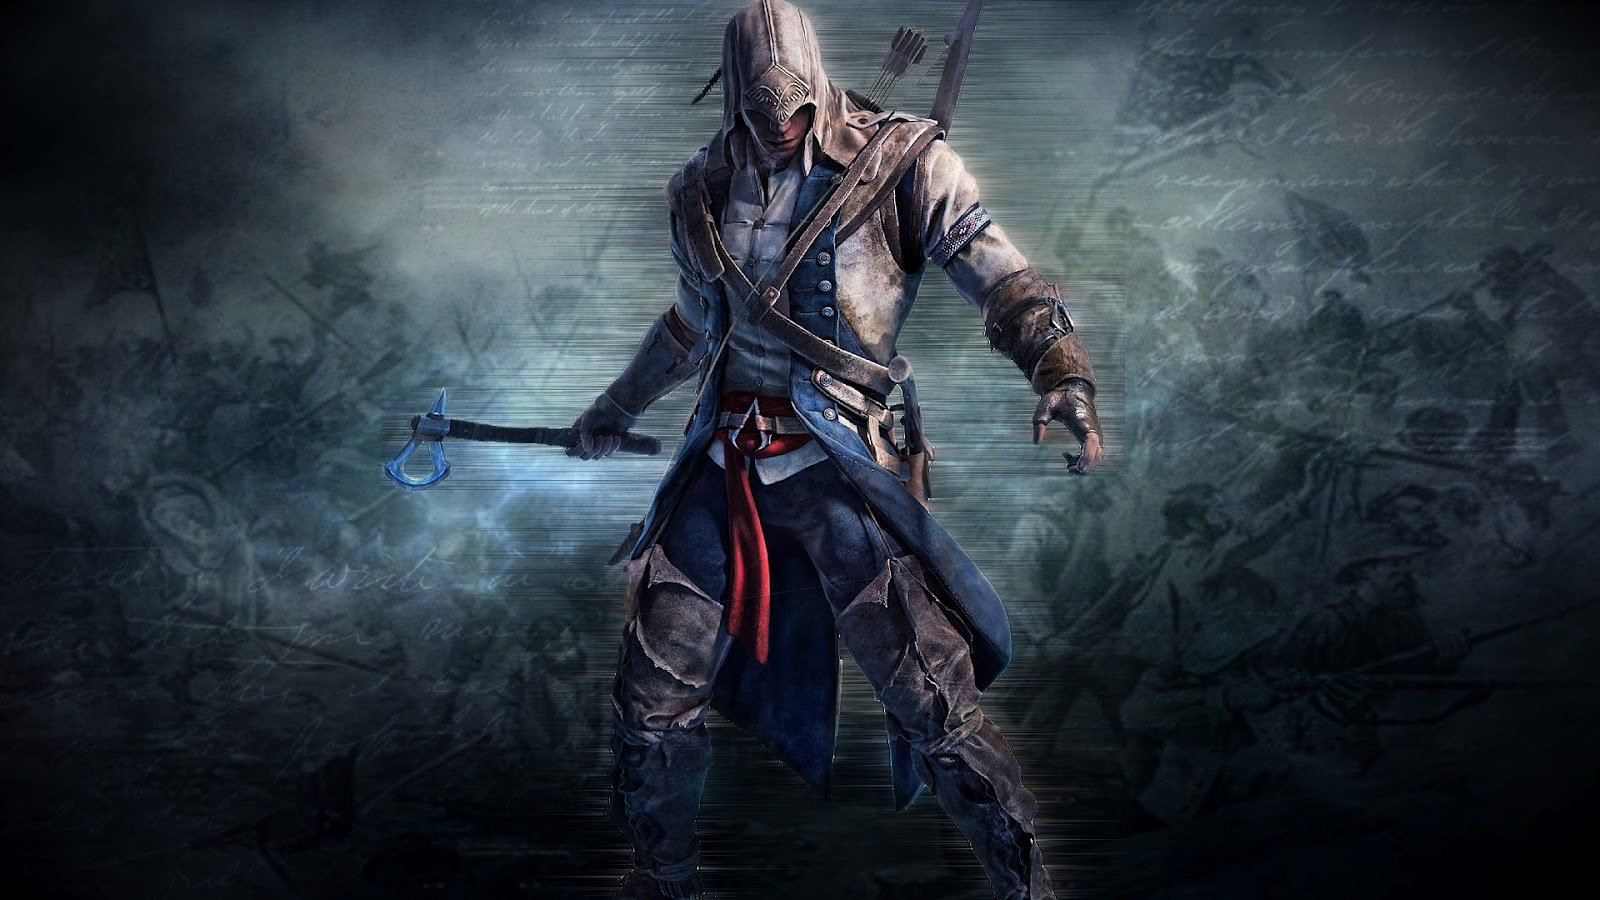 Game Wallpapers   Best HD Game Wallpapers 2013 1600x900